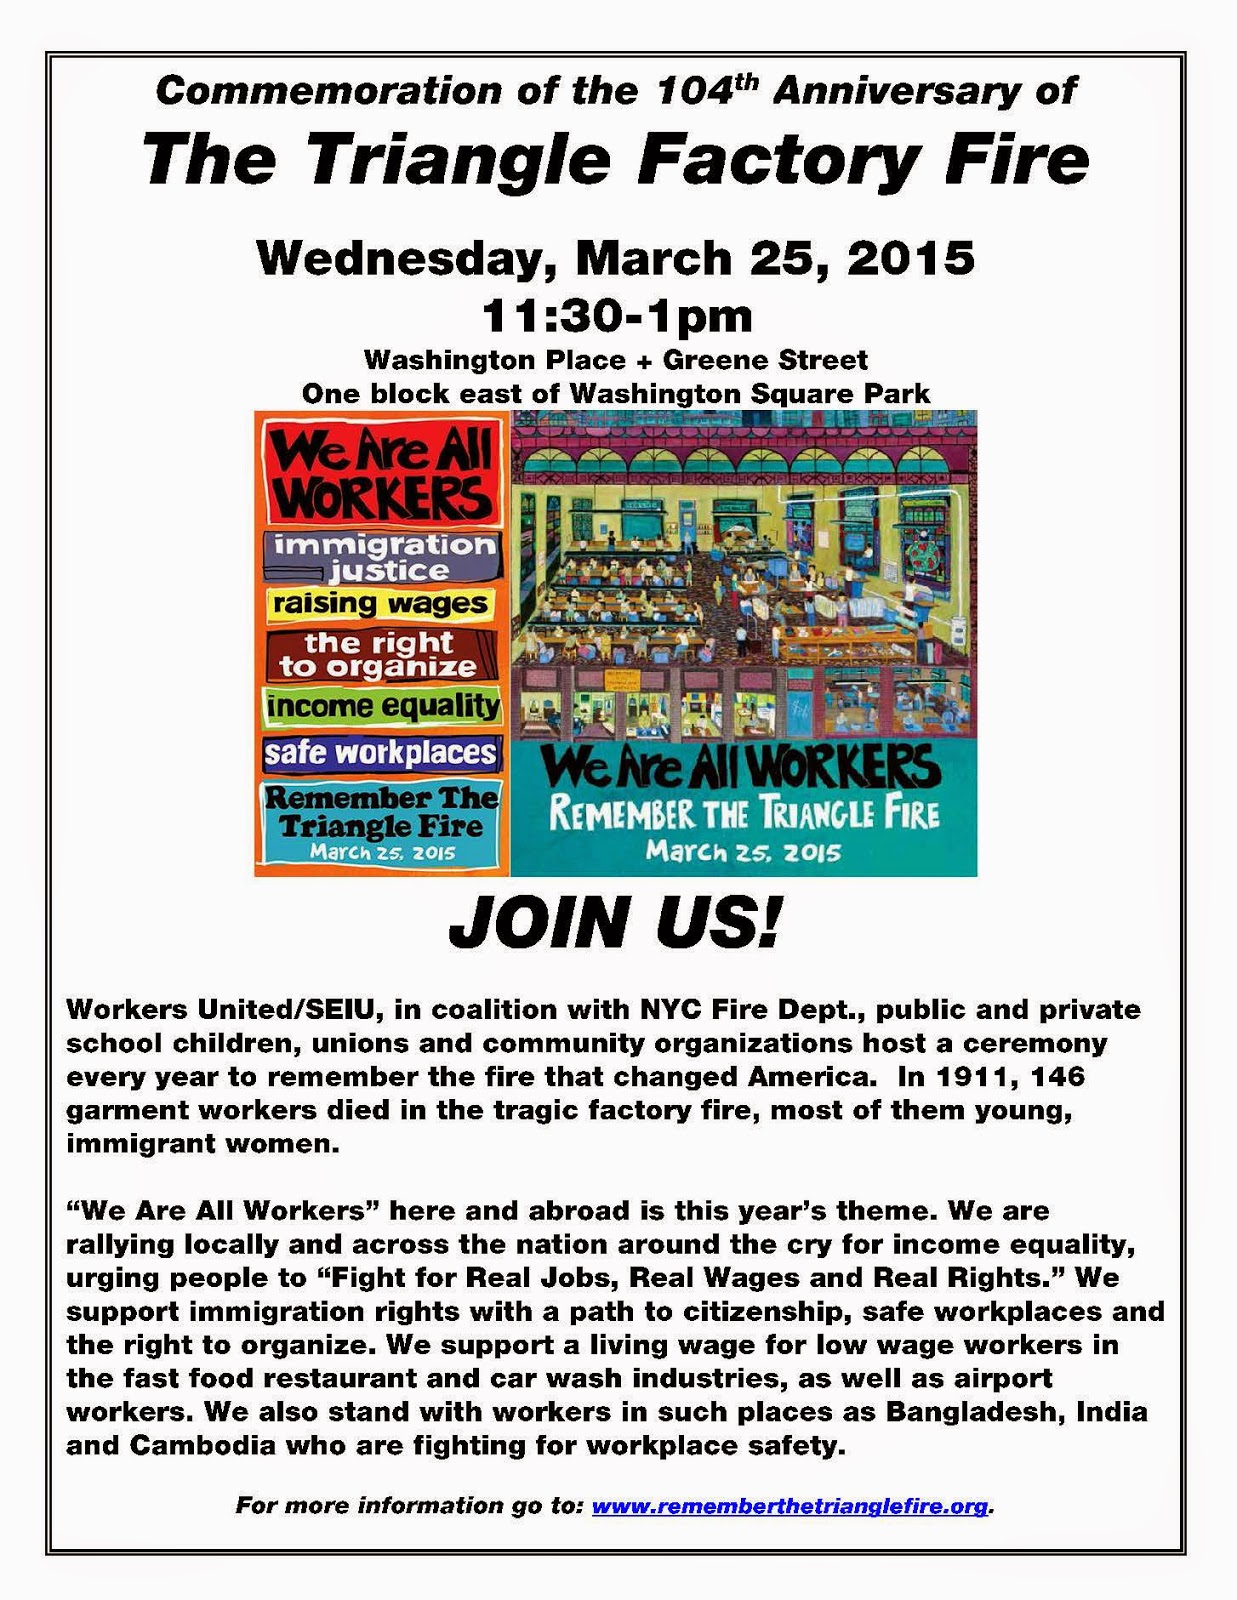 Triangle Factory Fire Commemoration Wednesday March 25, 2015